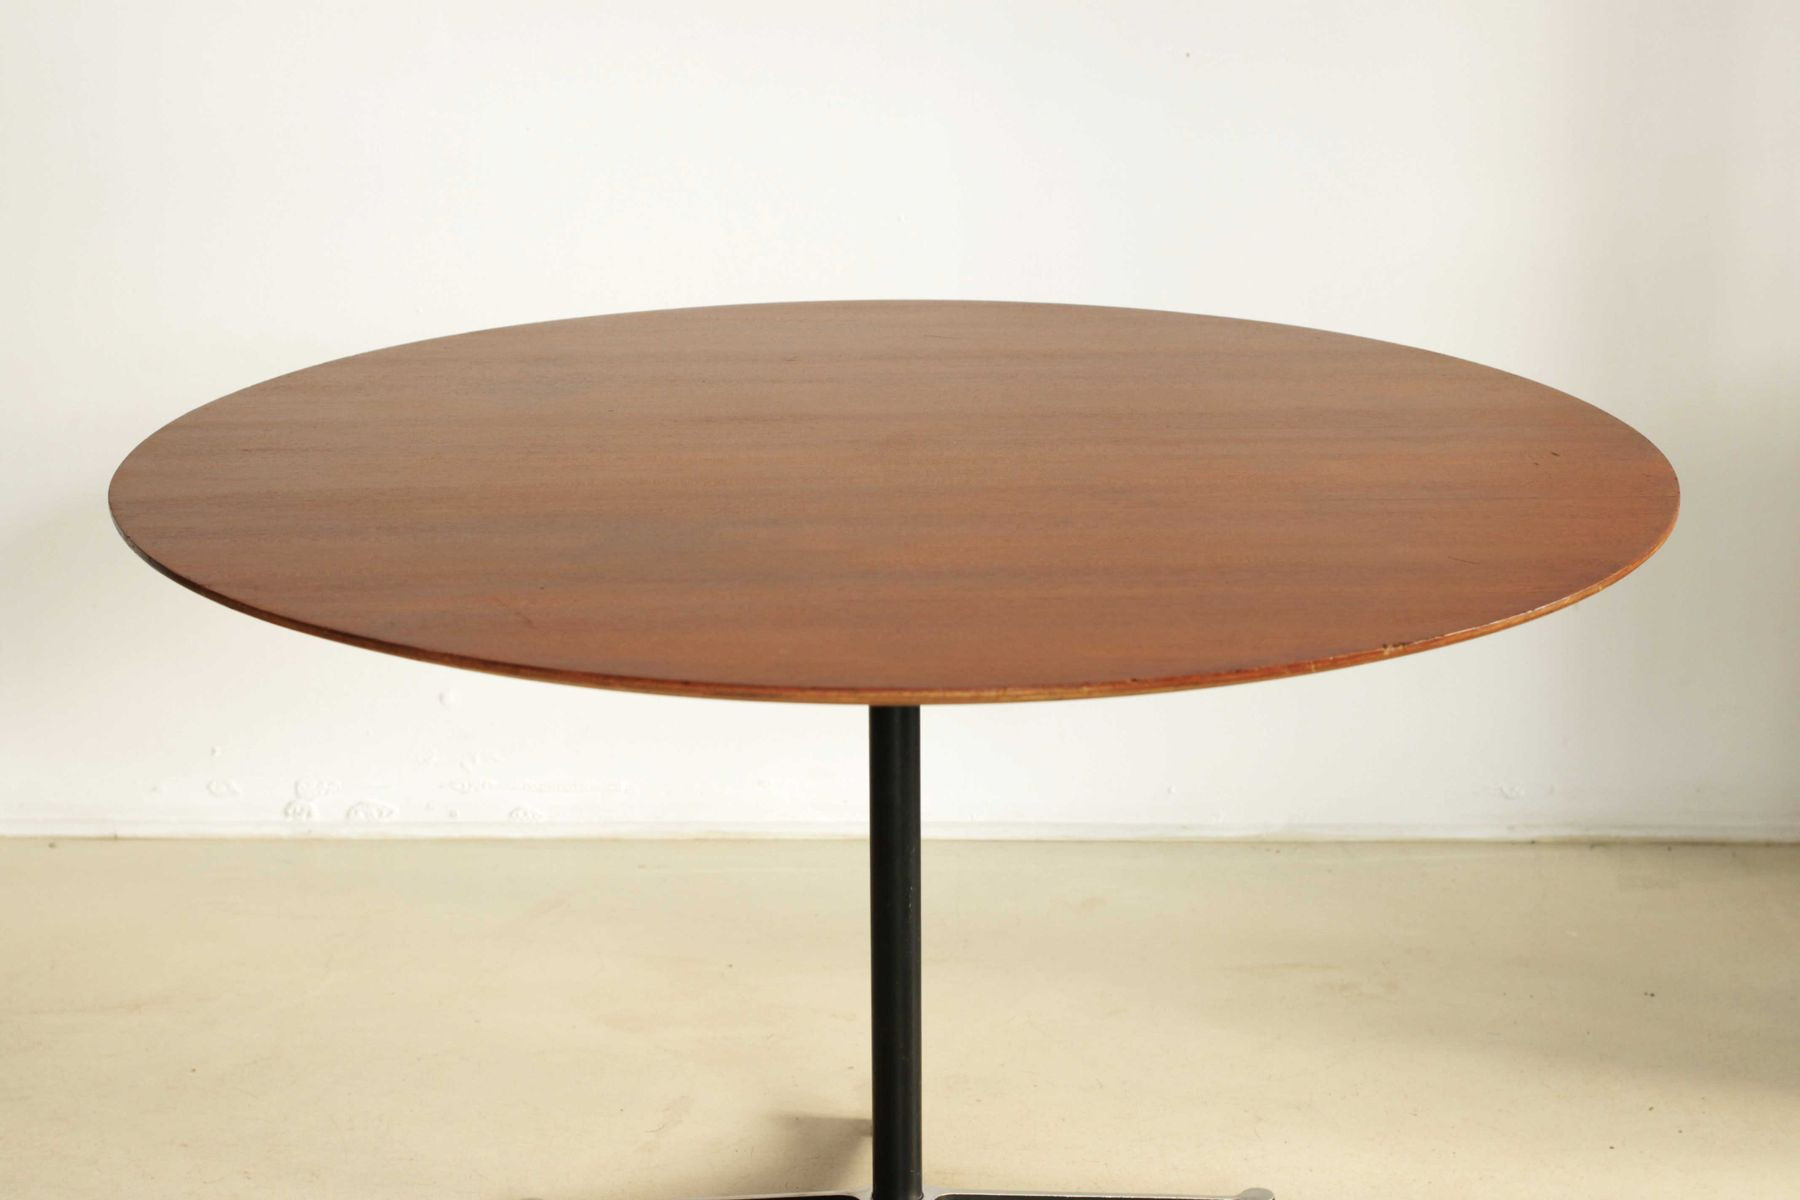 Contract Table by Charles & Ray Eames for Herman Miller 1960s for